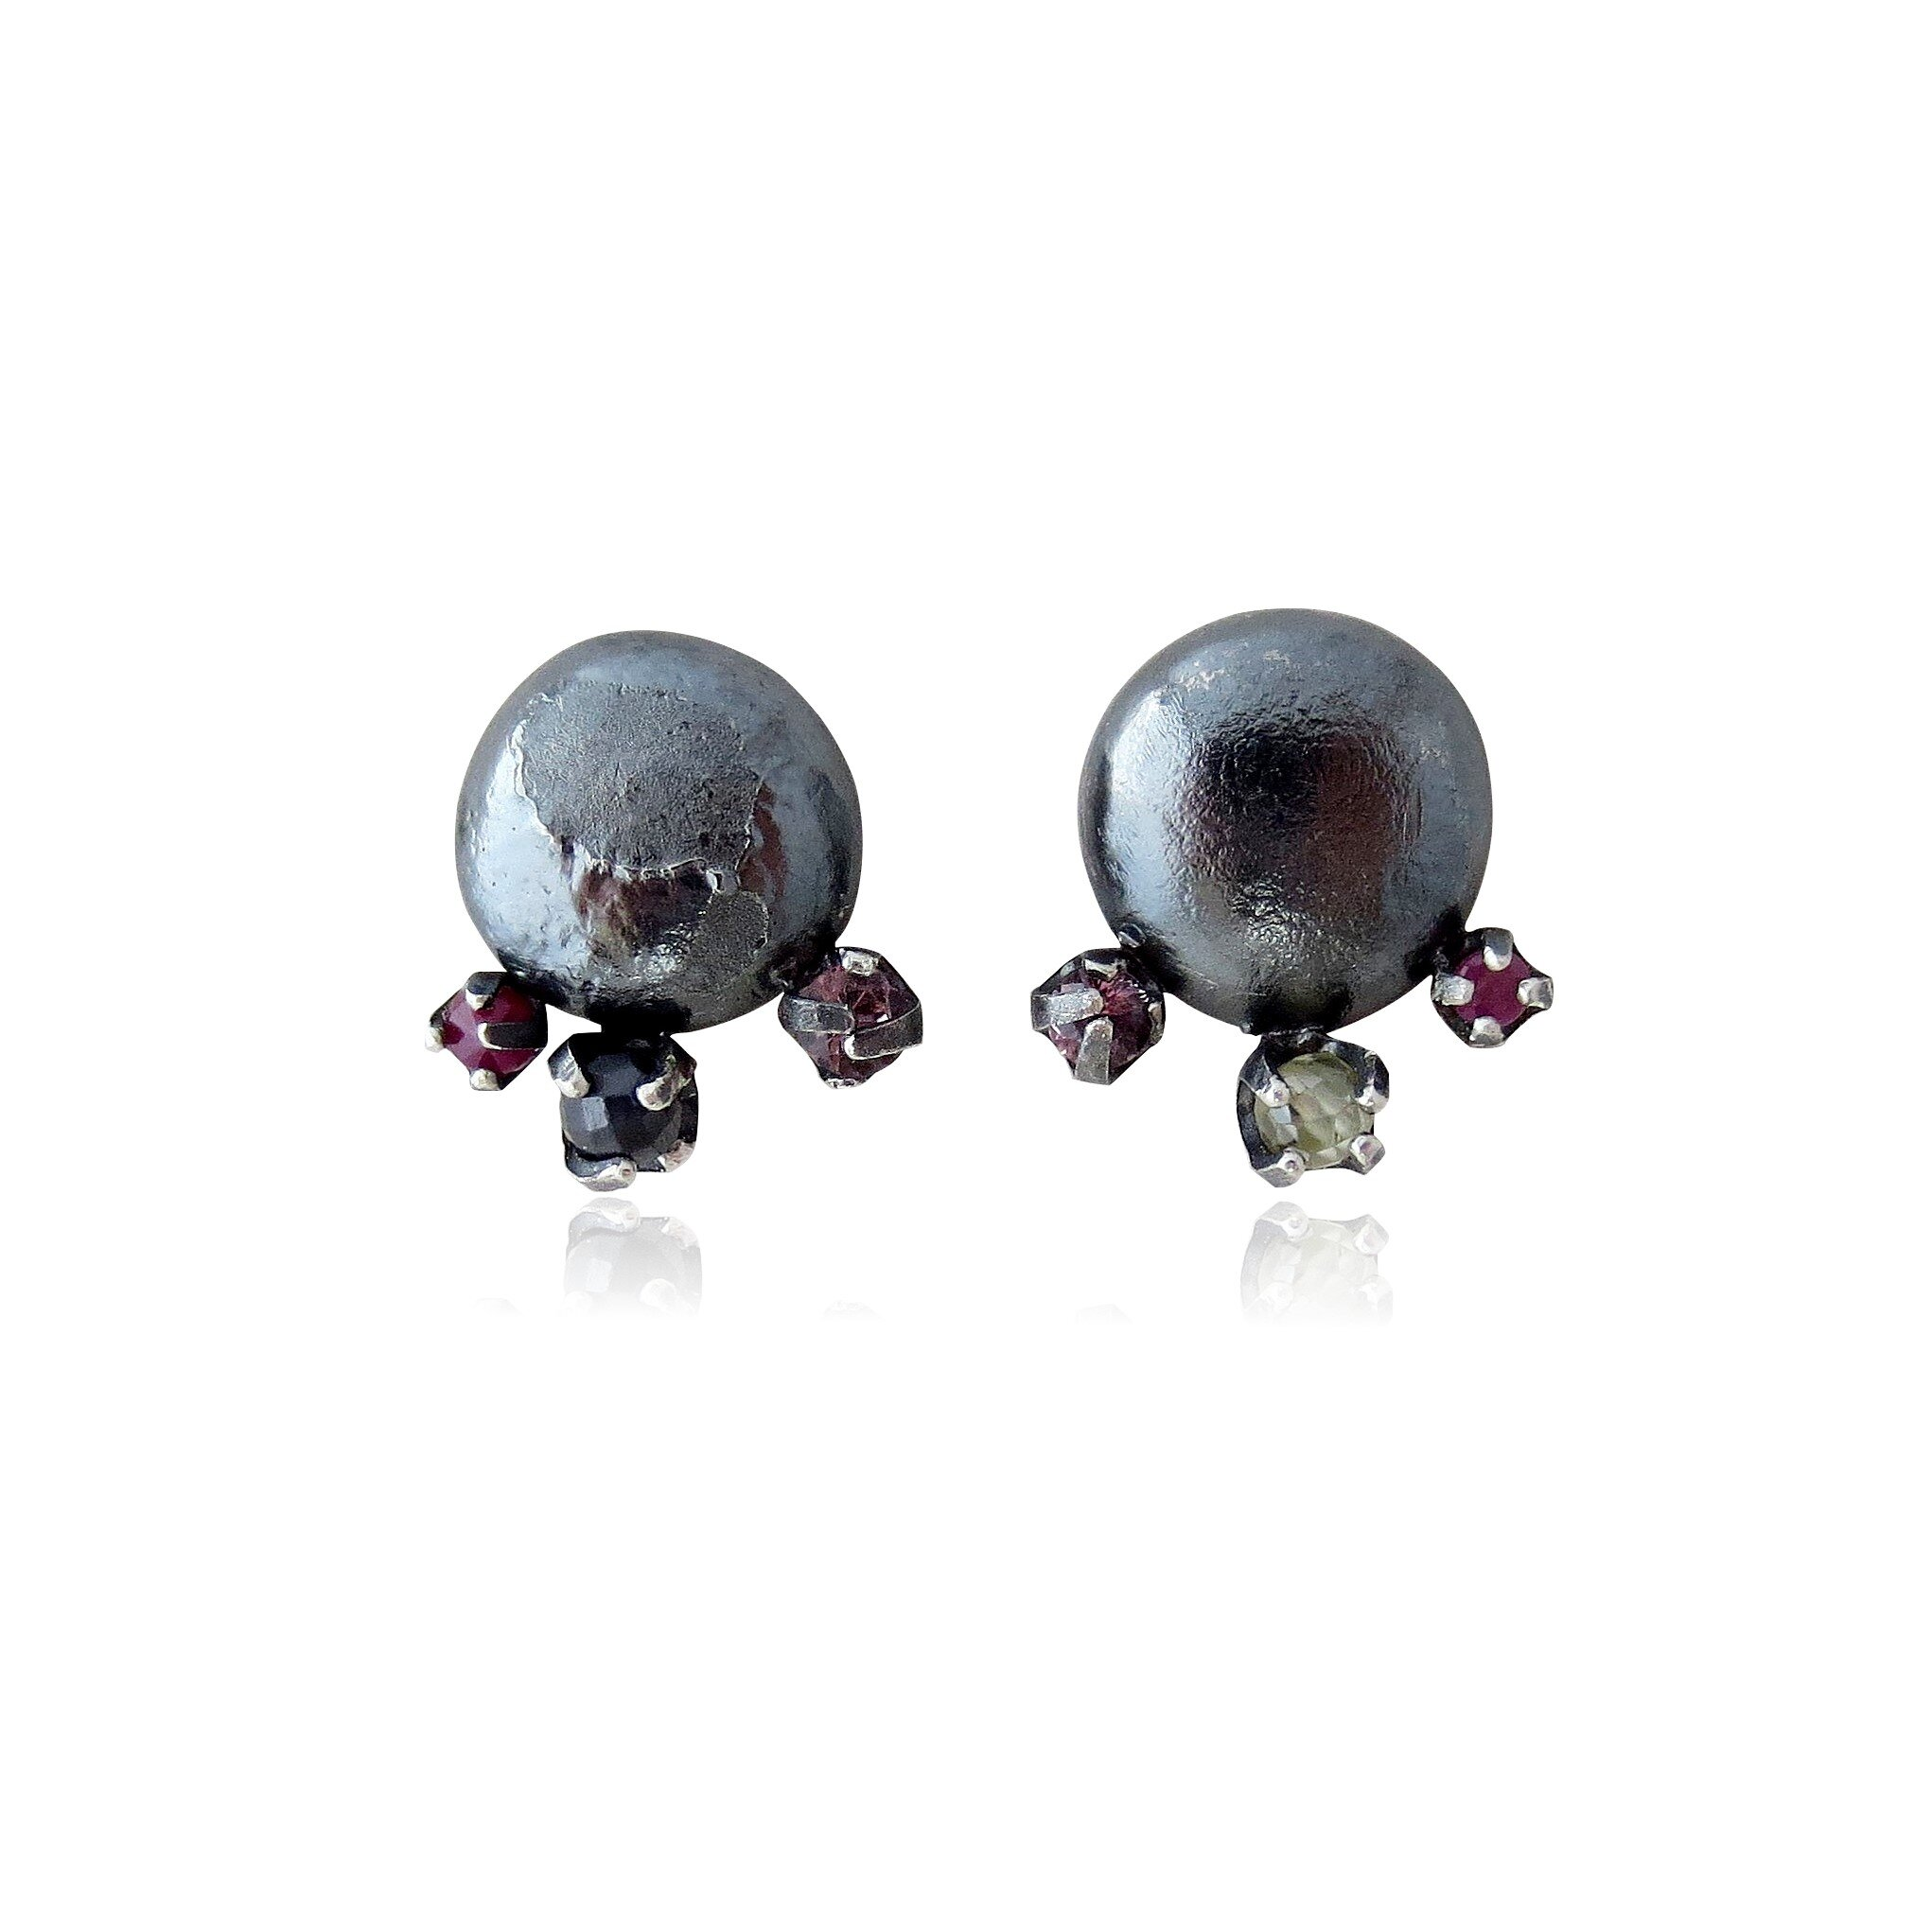 Oxidized sterling silver with cubic zirconia, pink sapphire, and rubies.